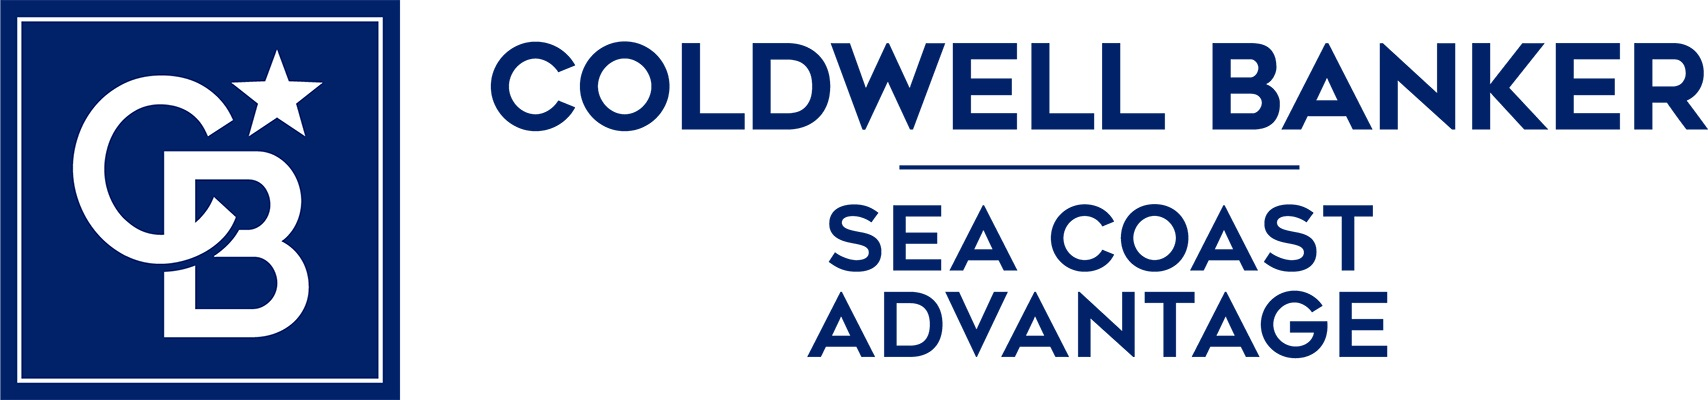 Jason Lloyd - Coldwell Banker Sea Coast Advantage Realty